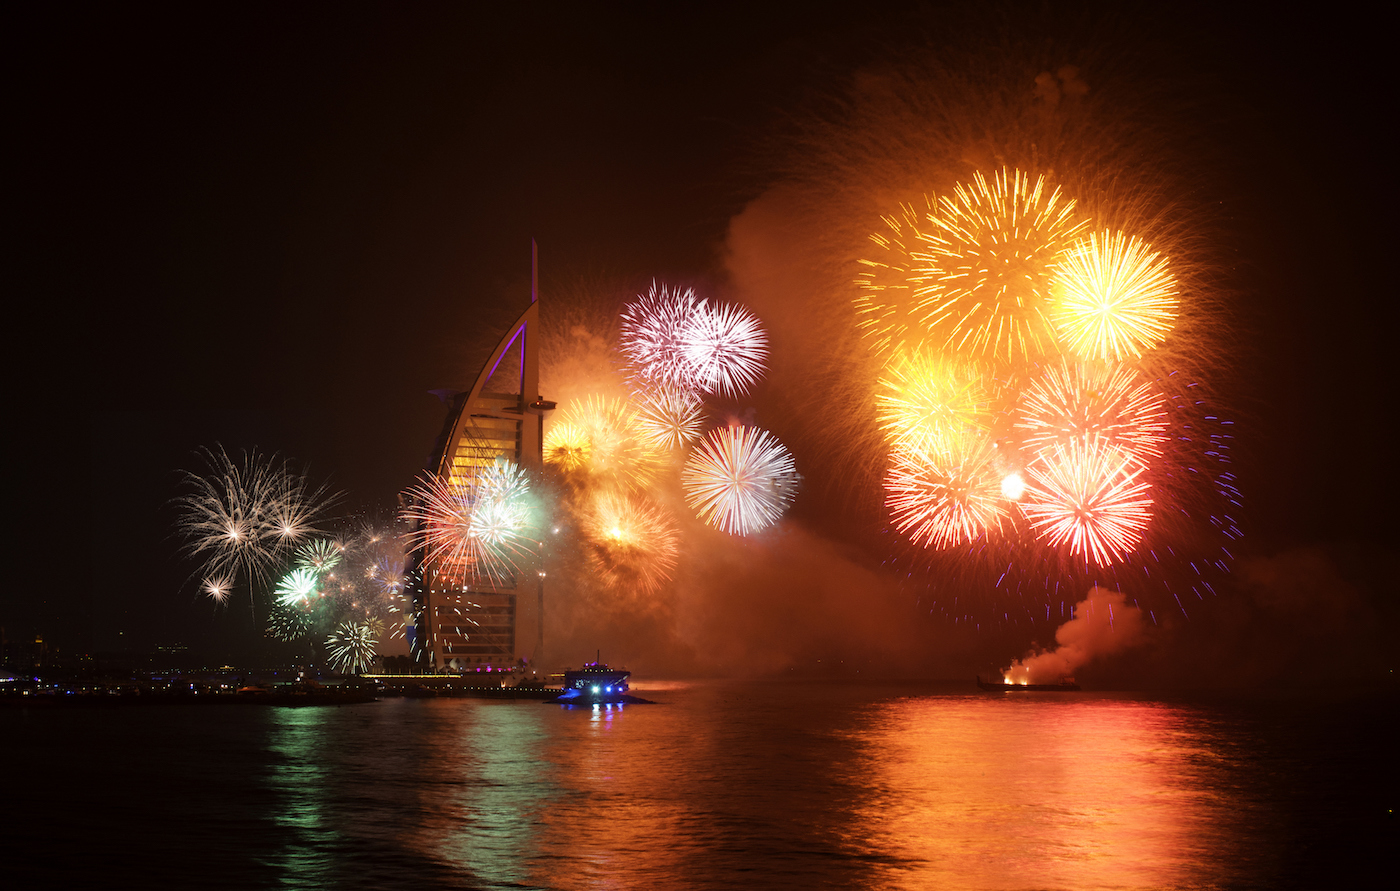 Celebrations at Jumeira Beach, Dubai